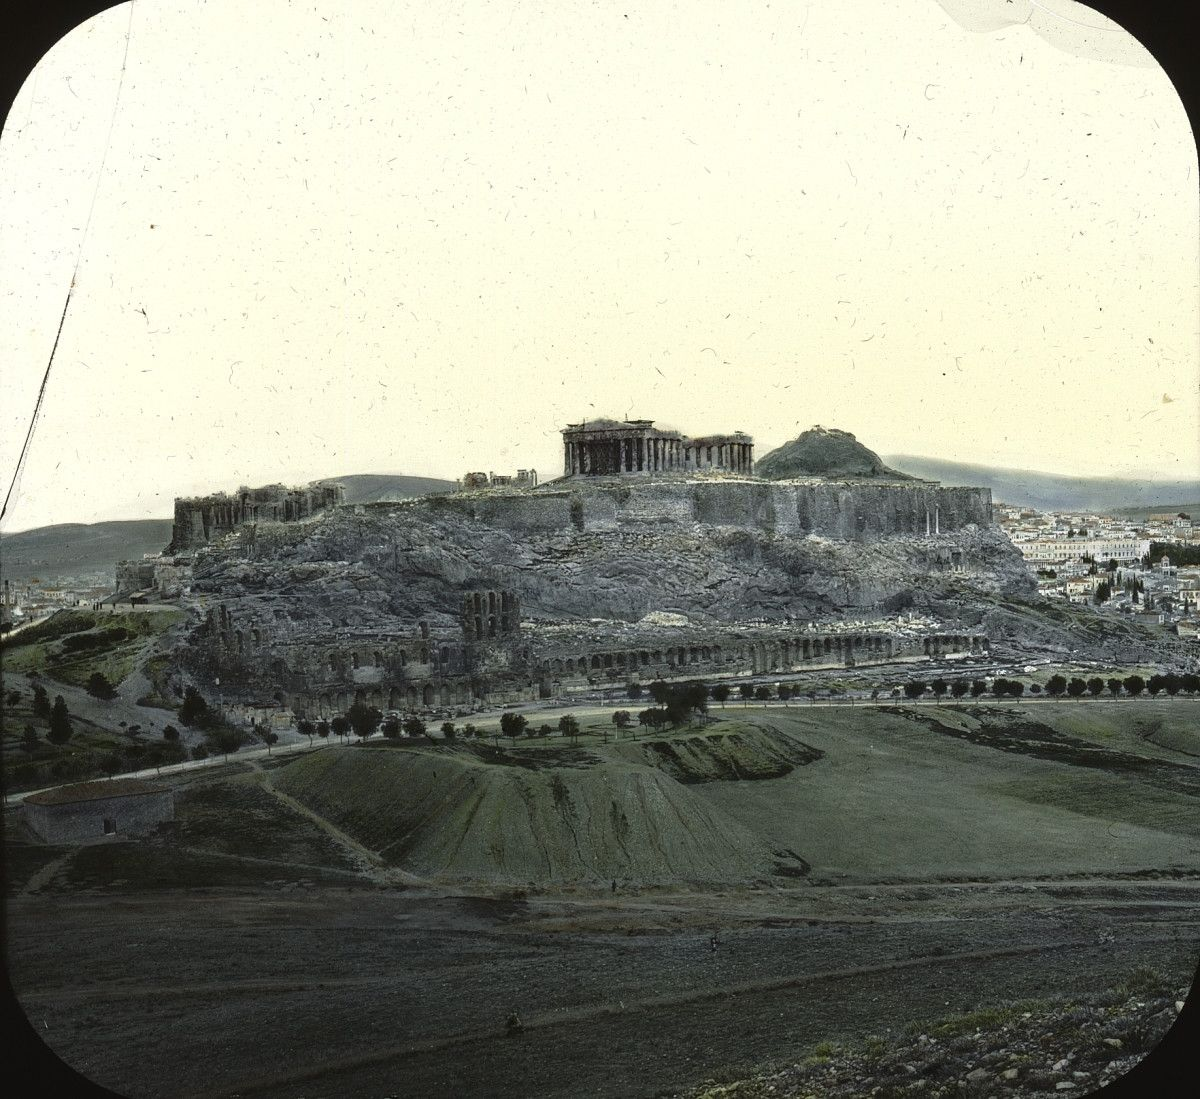 The Acropolis of Athens sometime around 1900 (color)